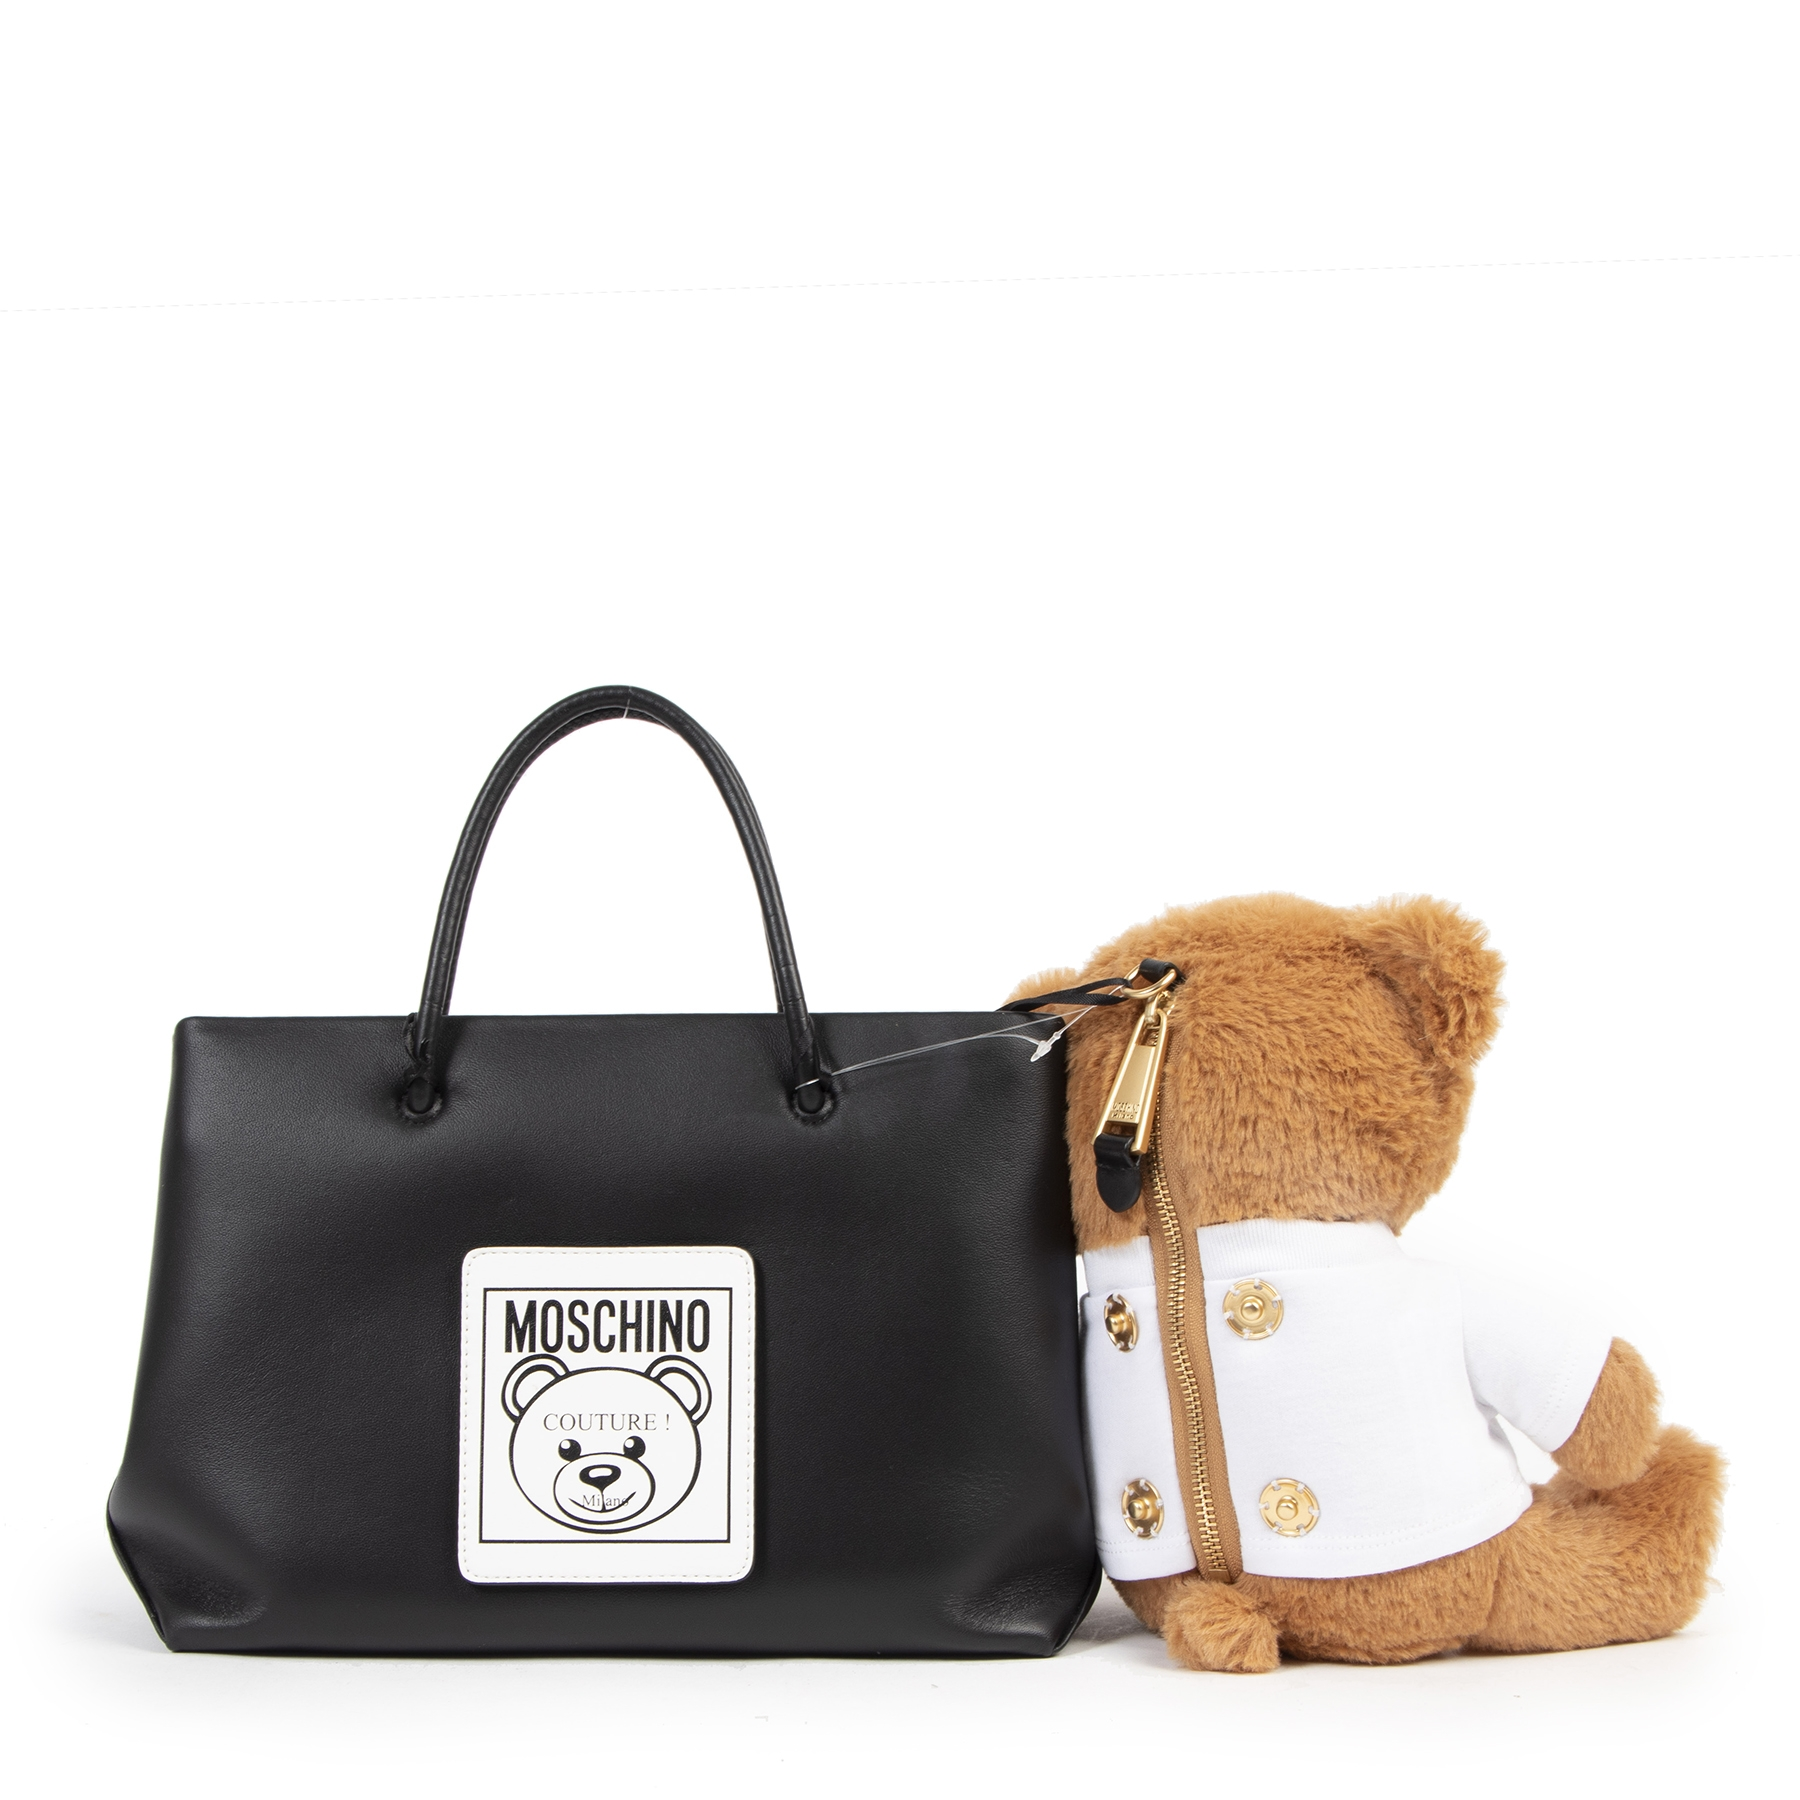 Moschino Teddy Shopping Tote Bag